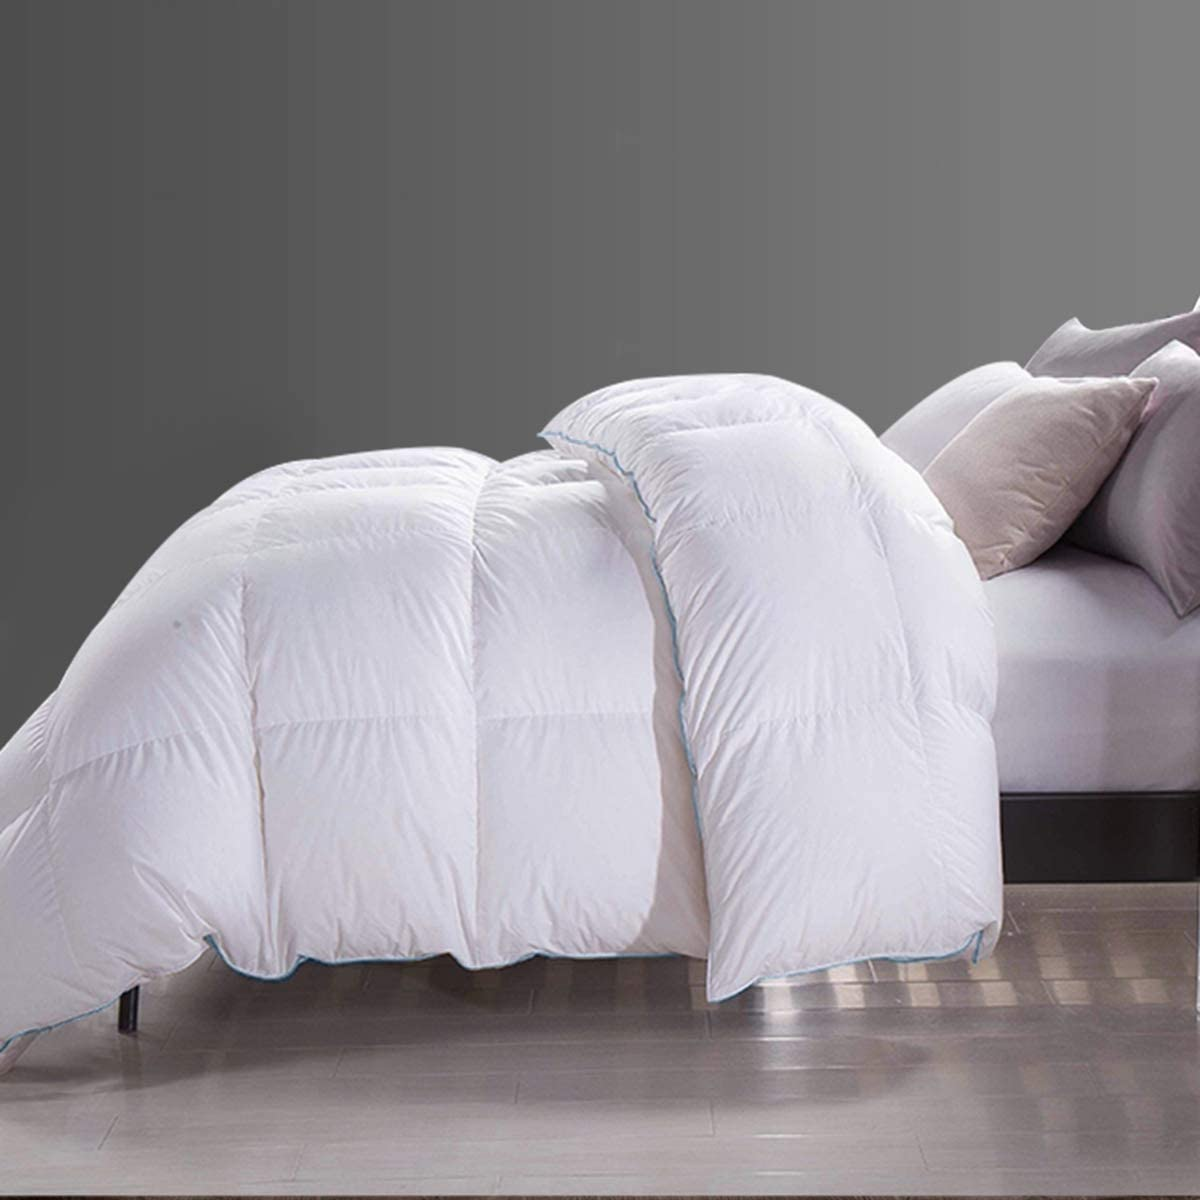 Goose Down Quilt Insert, White Baffle Box Duvet Quilt for Winter, 800+ Fill Power 55oz Down Filled Comforter with Corner Tab (Full/Queen Size 90x90 Inch)